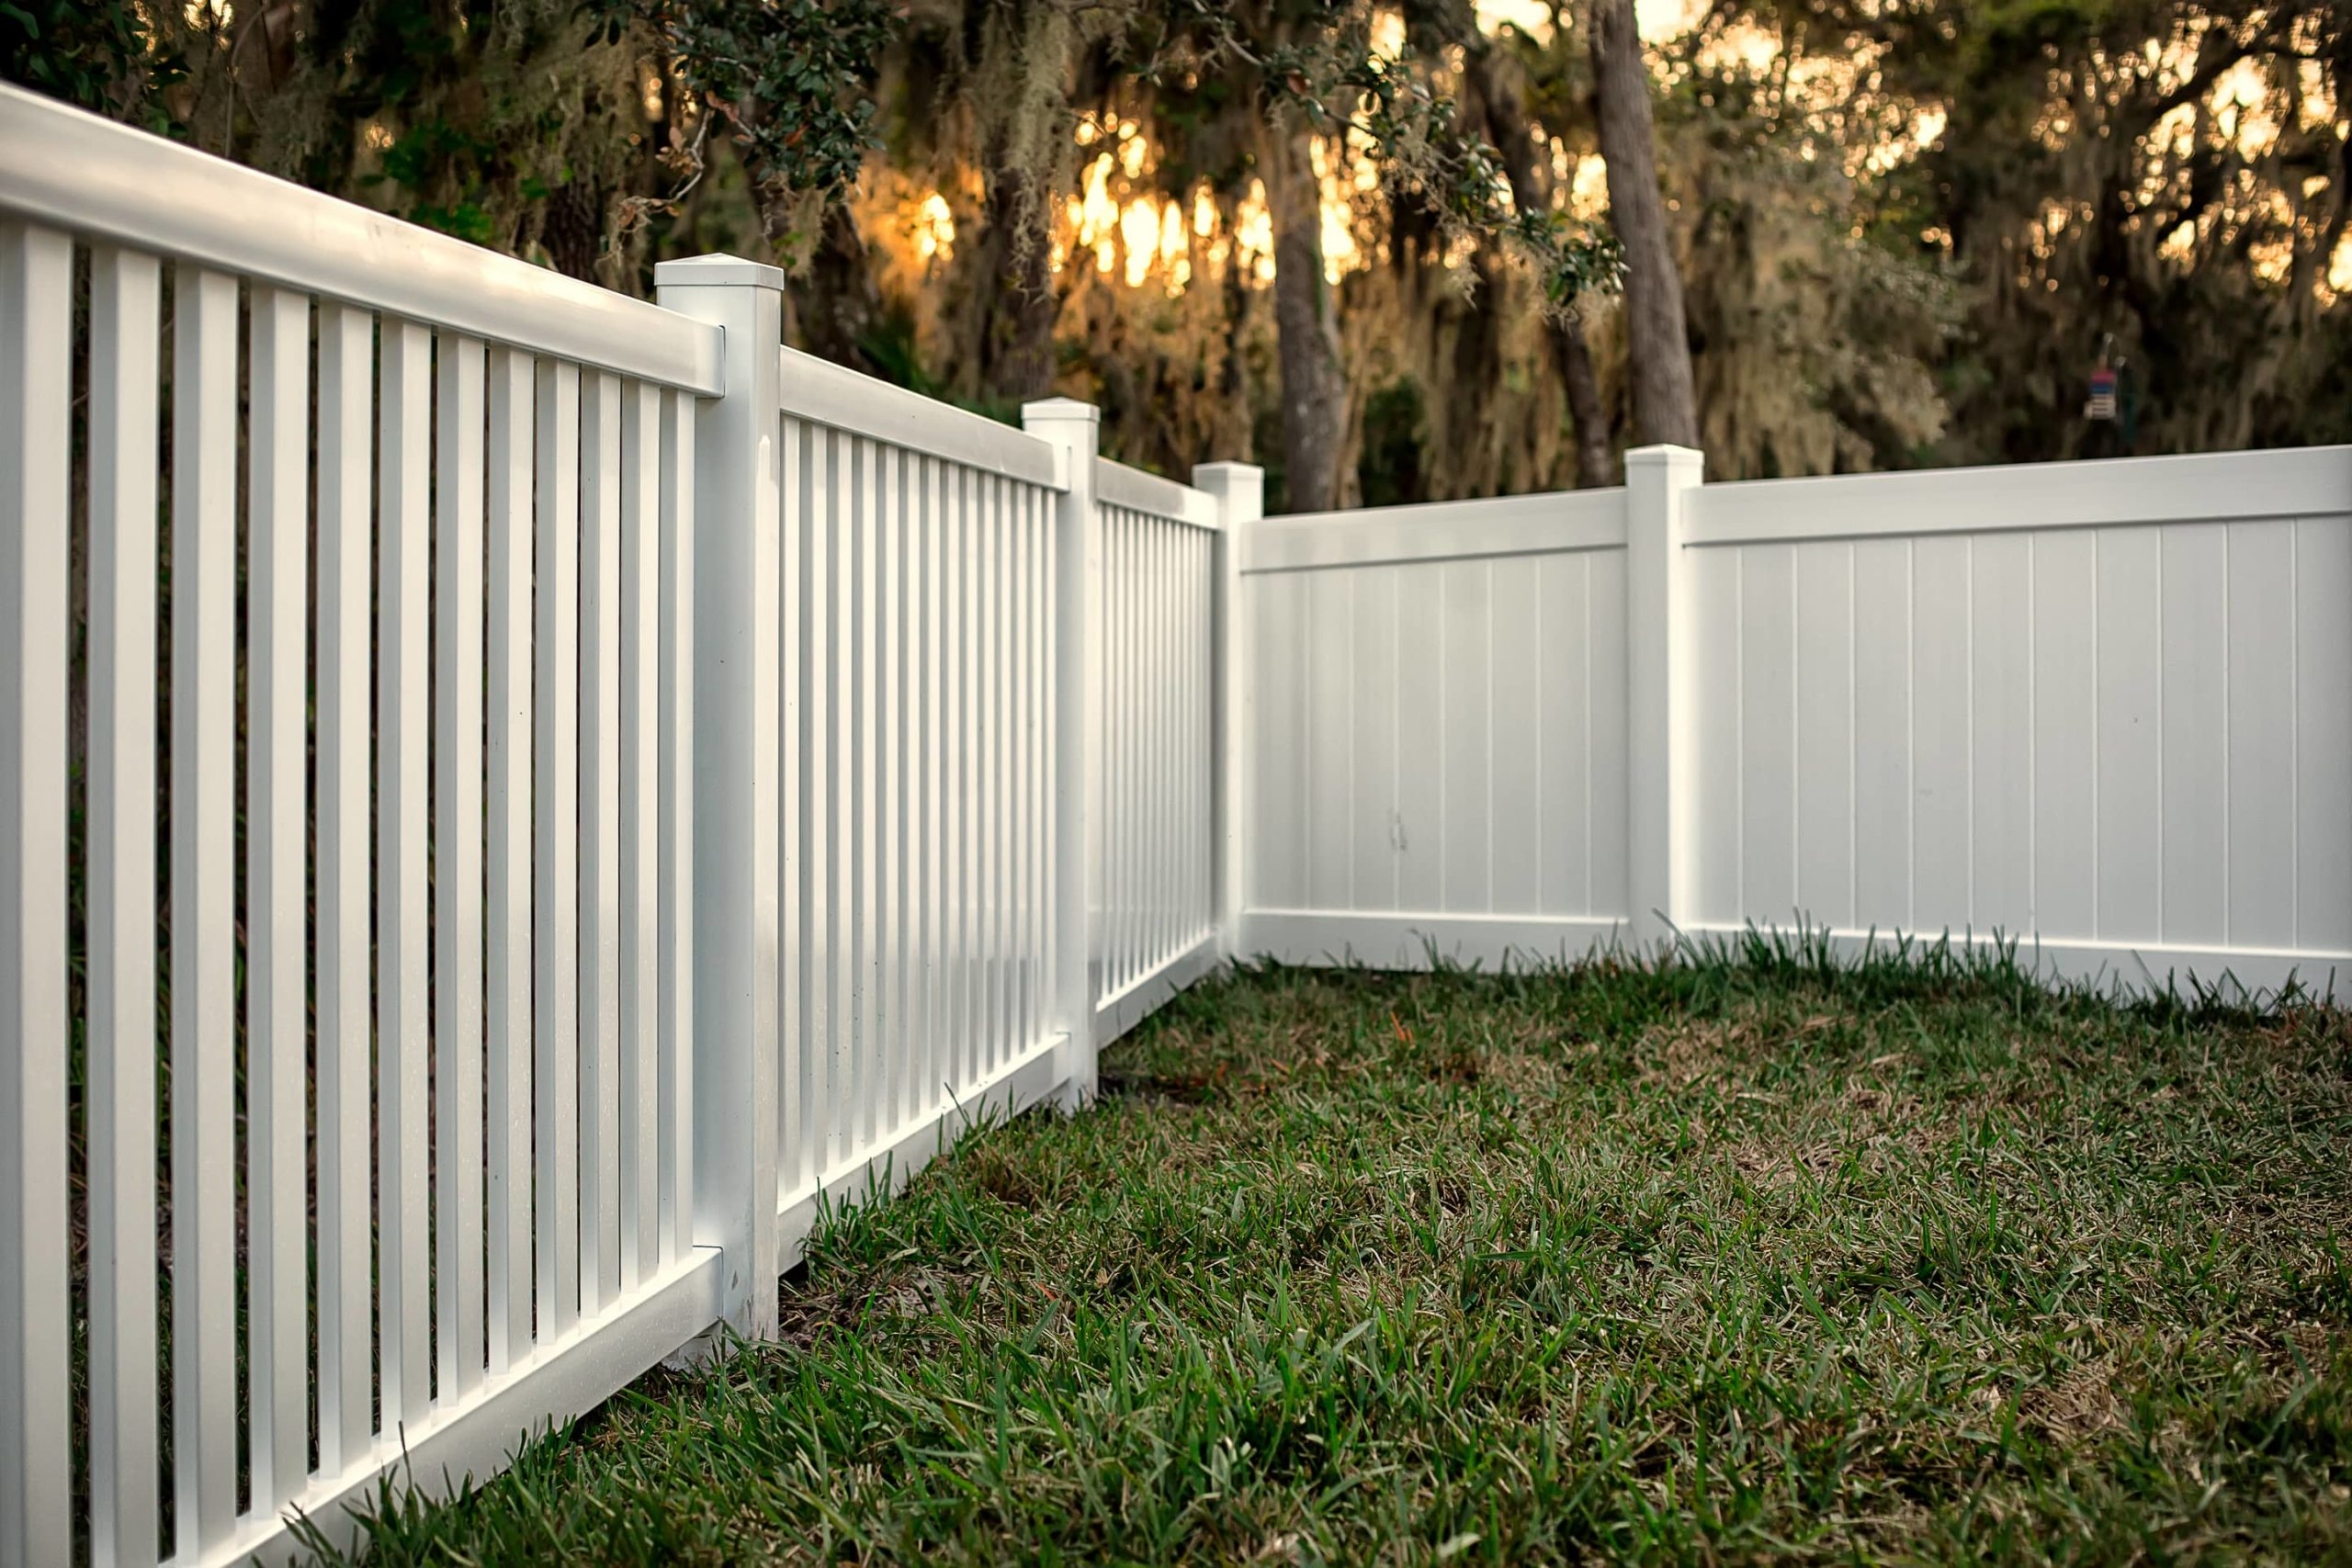 This image shows a white wooden fence for a backyard.